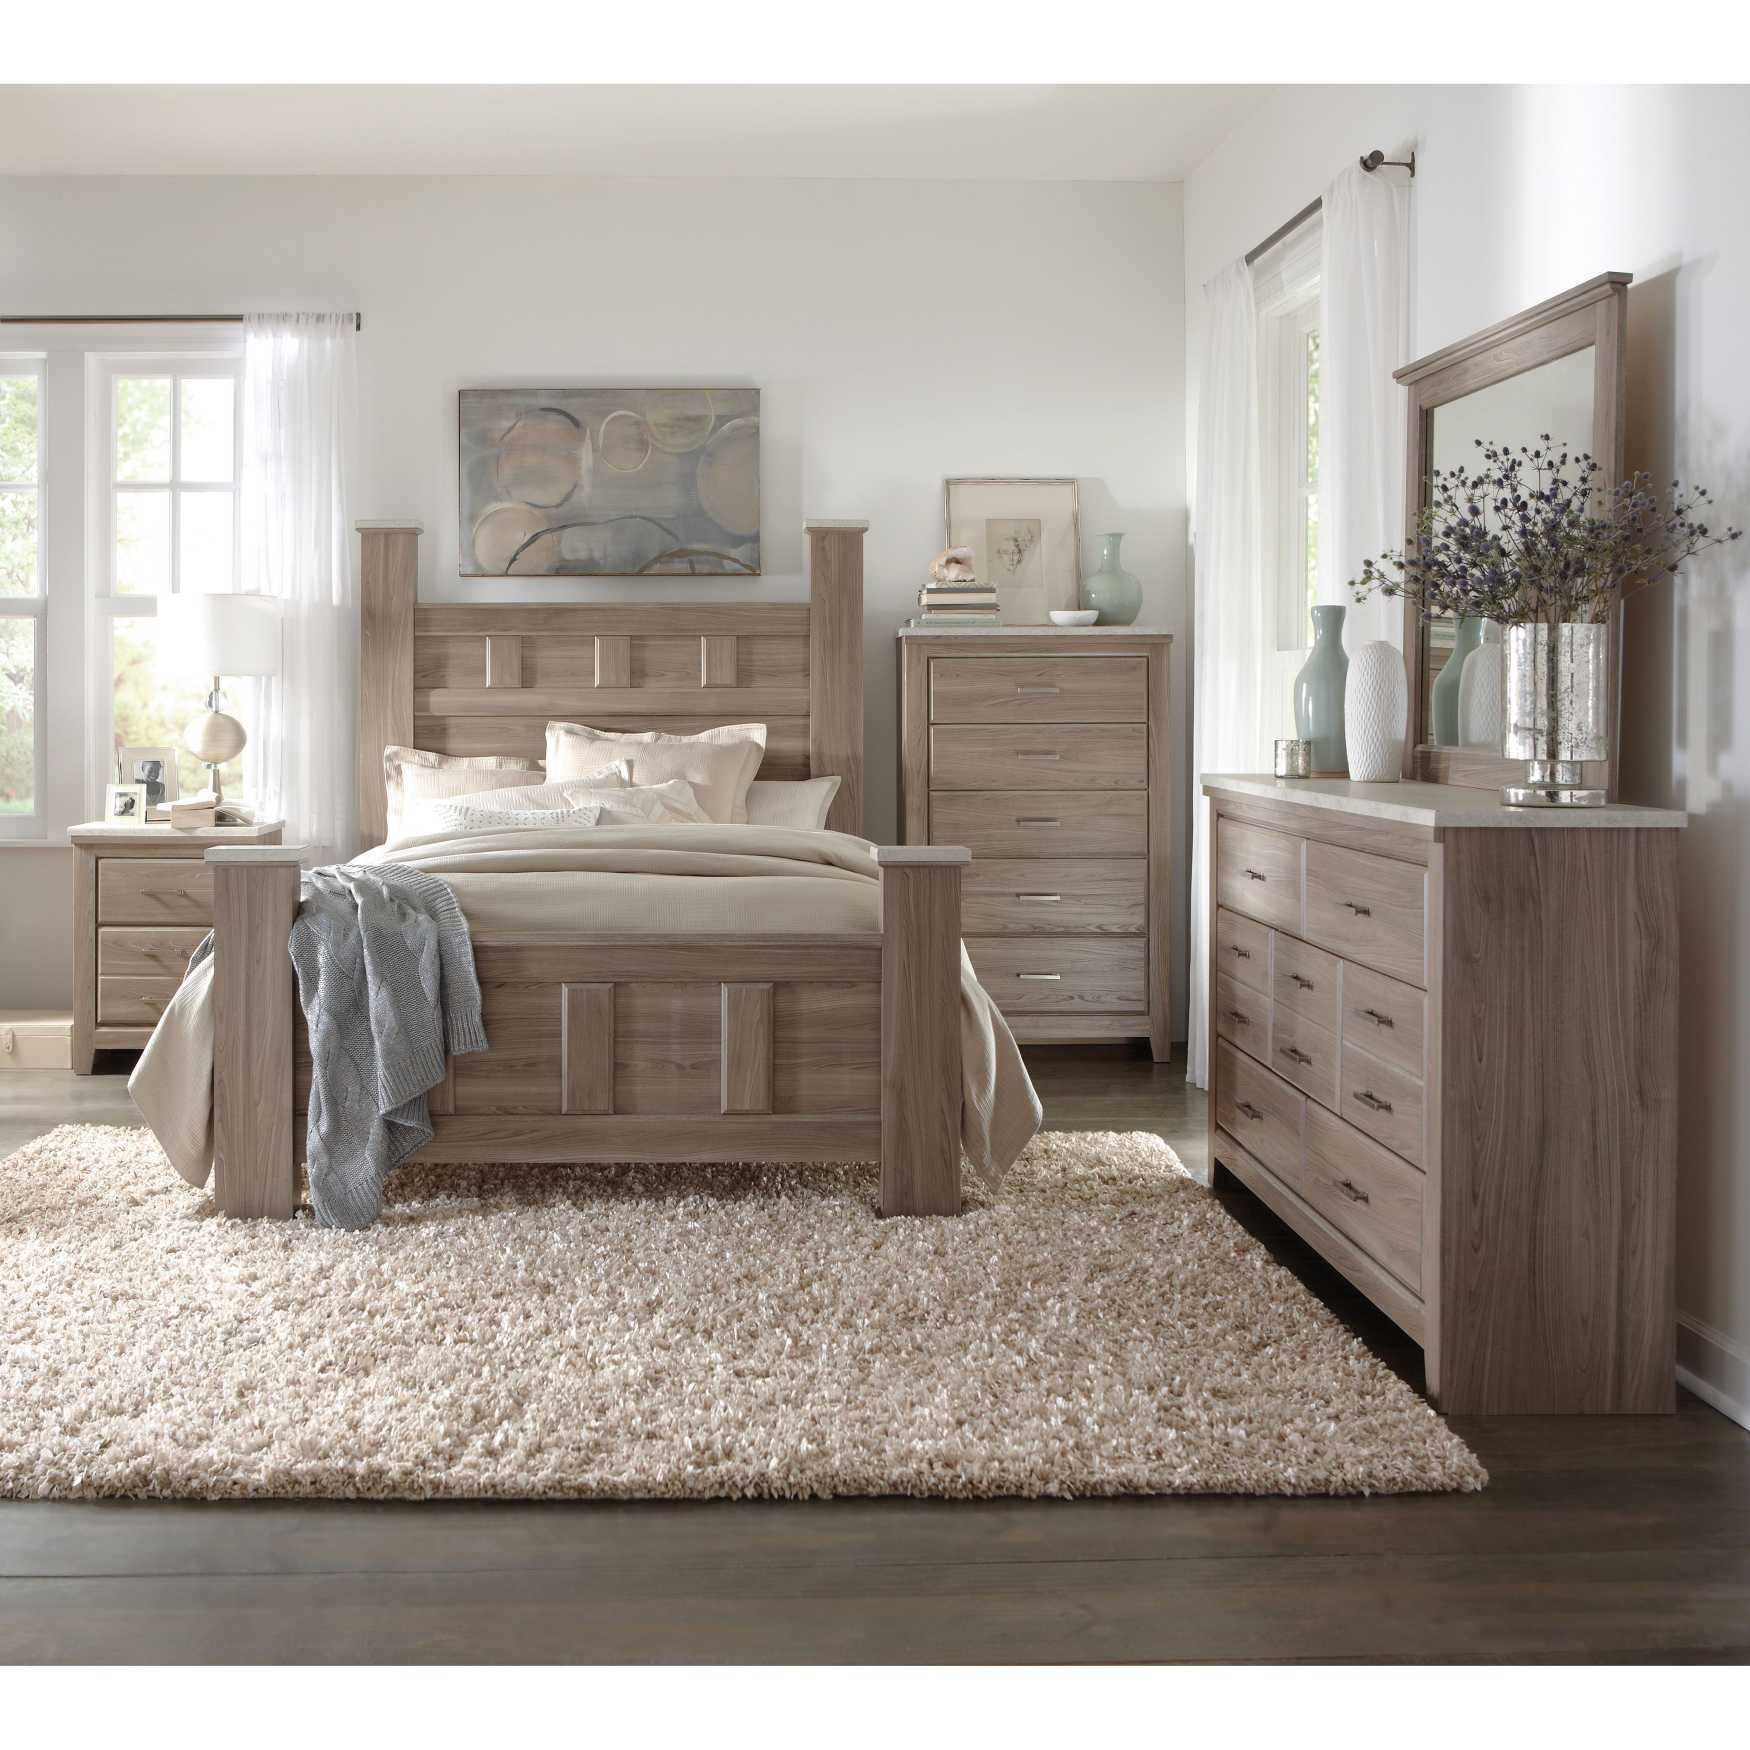 Art Van 6 piece Queen Bedroom Set Overstock Shopping Big ...